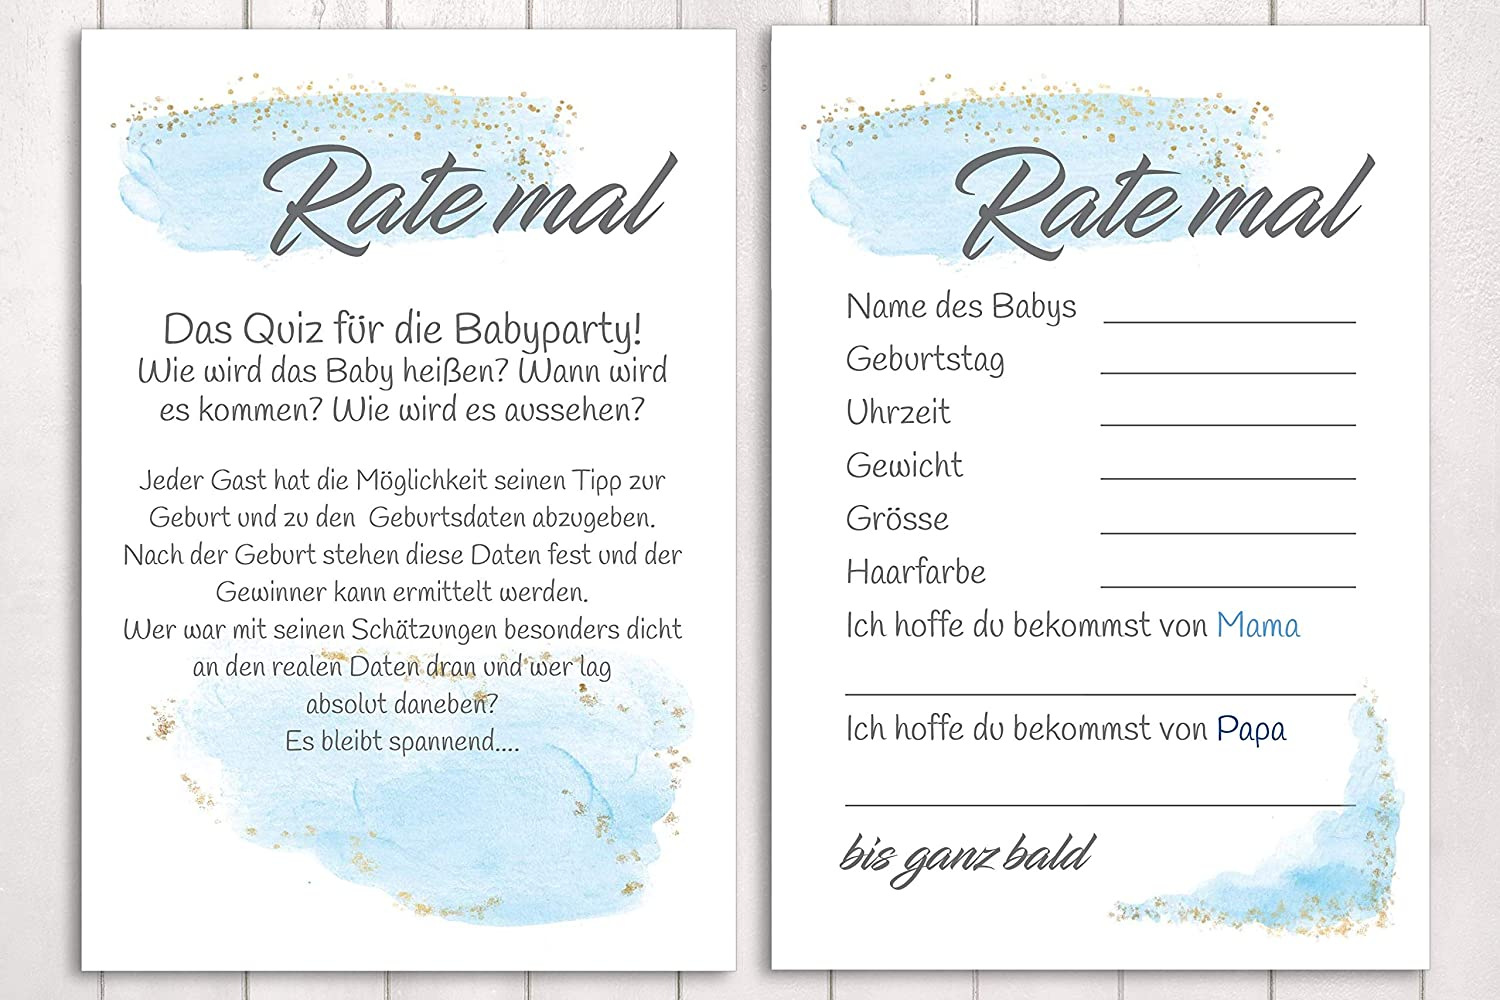 10 Karten'Rate mal.' Babyparty Spiel in Watercolor Blau - BabyShower Game